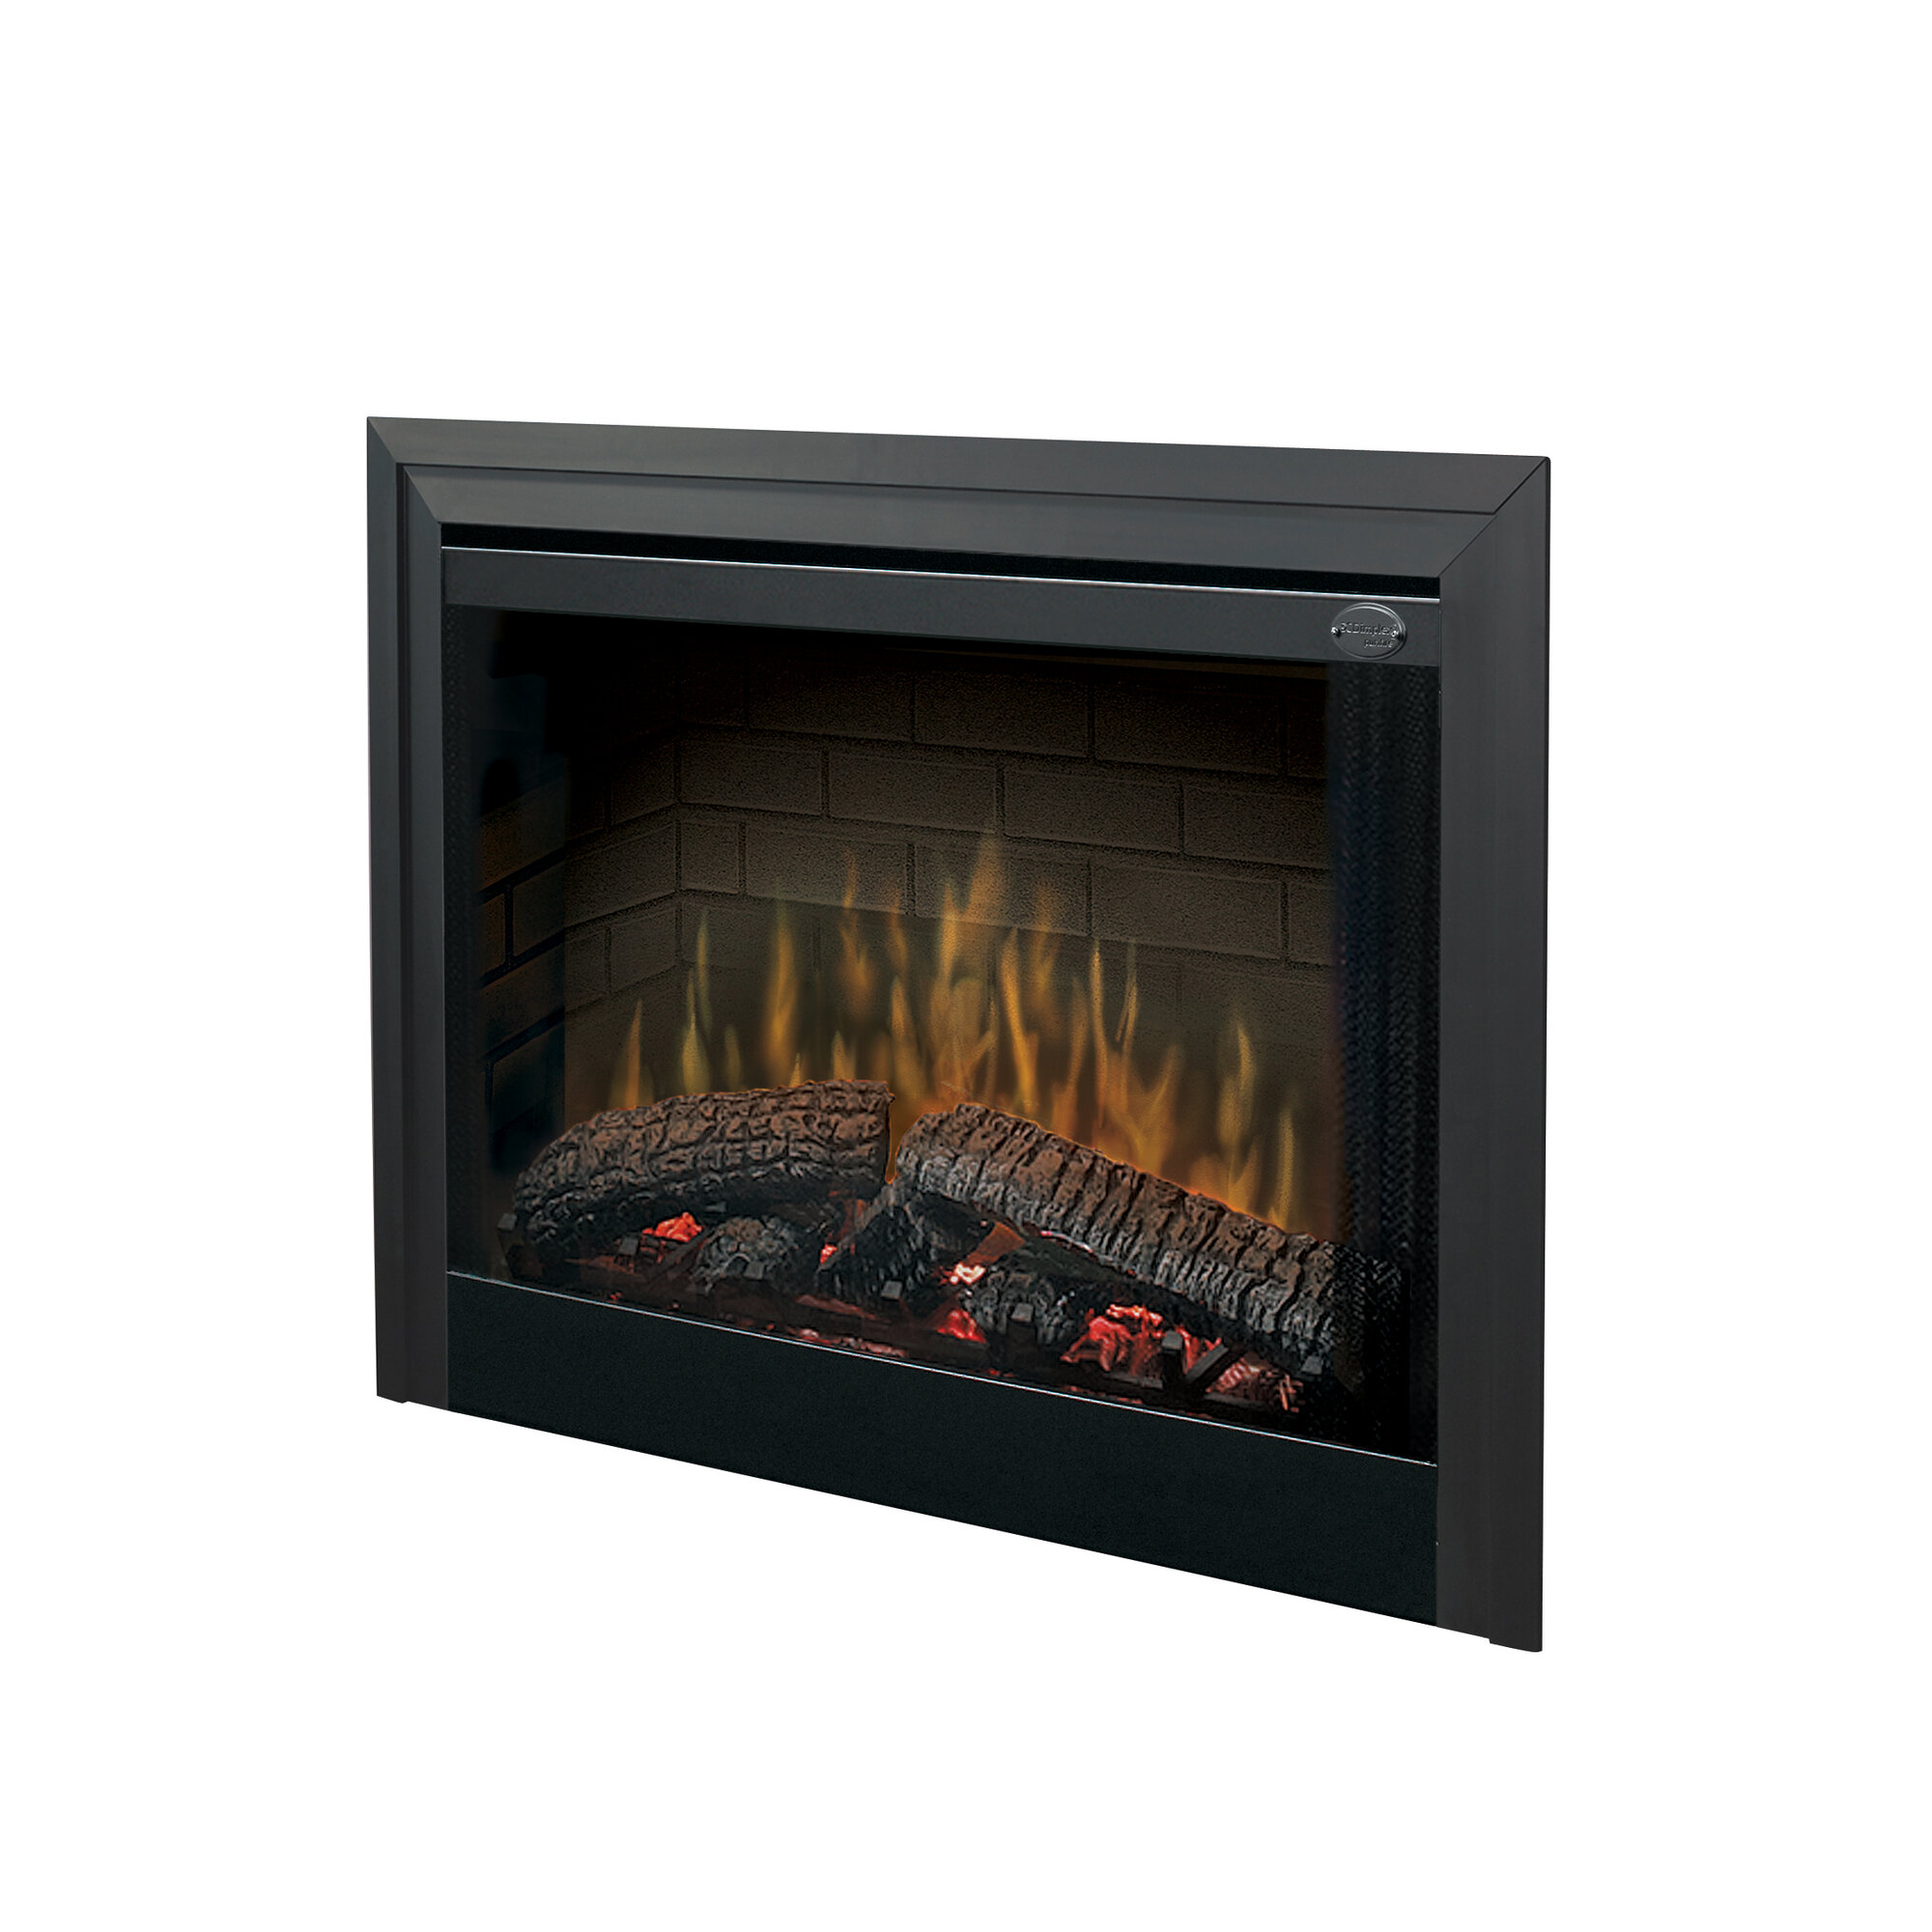 Dimplex 39 Wall Mount Electric Fireplace Insert